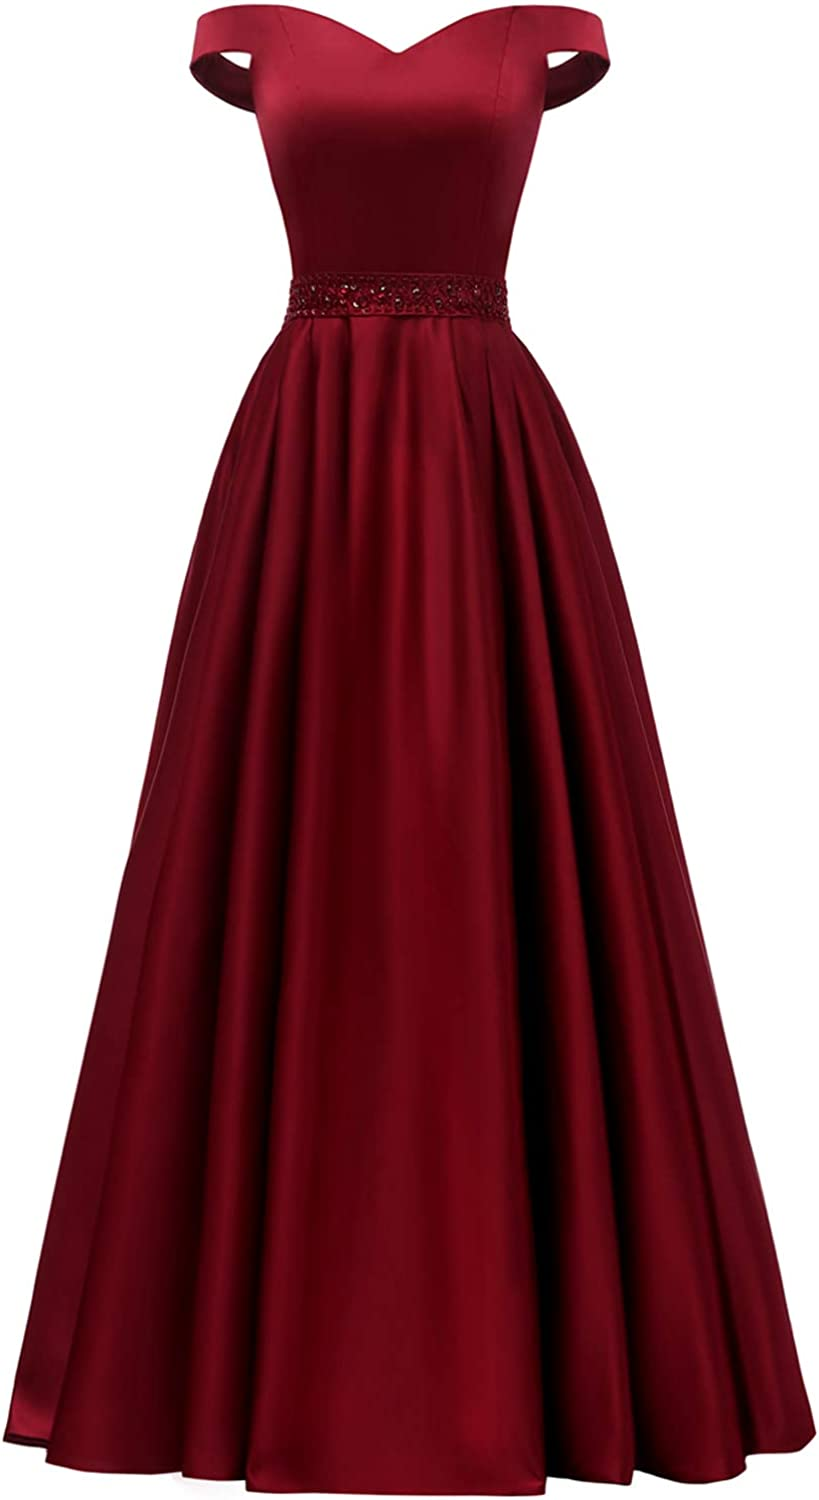 Yorformals Women's Off The Shoulder Aline Beaded Satin Prom Dress Long Evening Ball Gown with Pockets Size 8 Burgundy